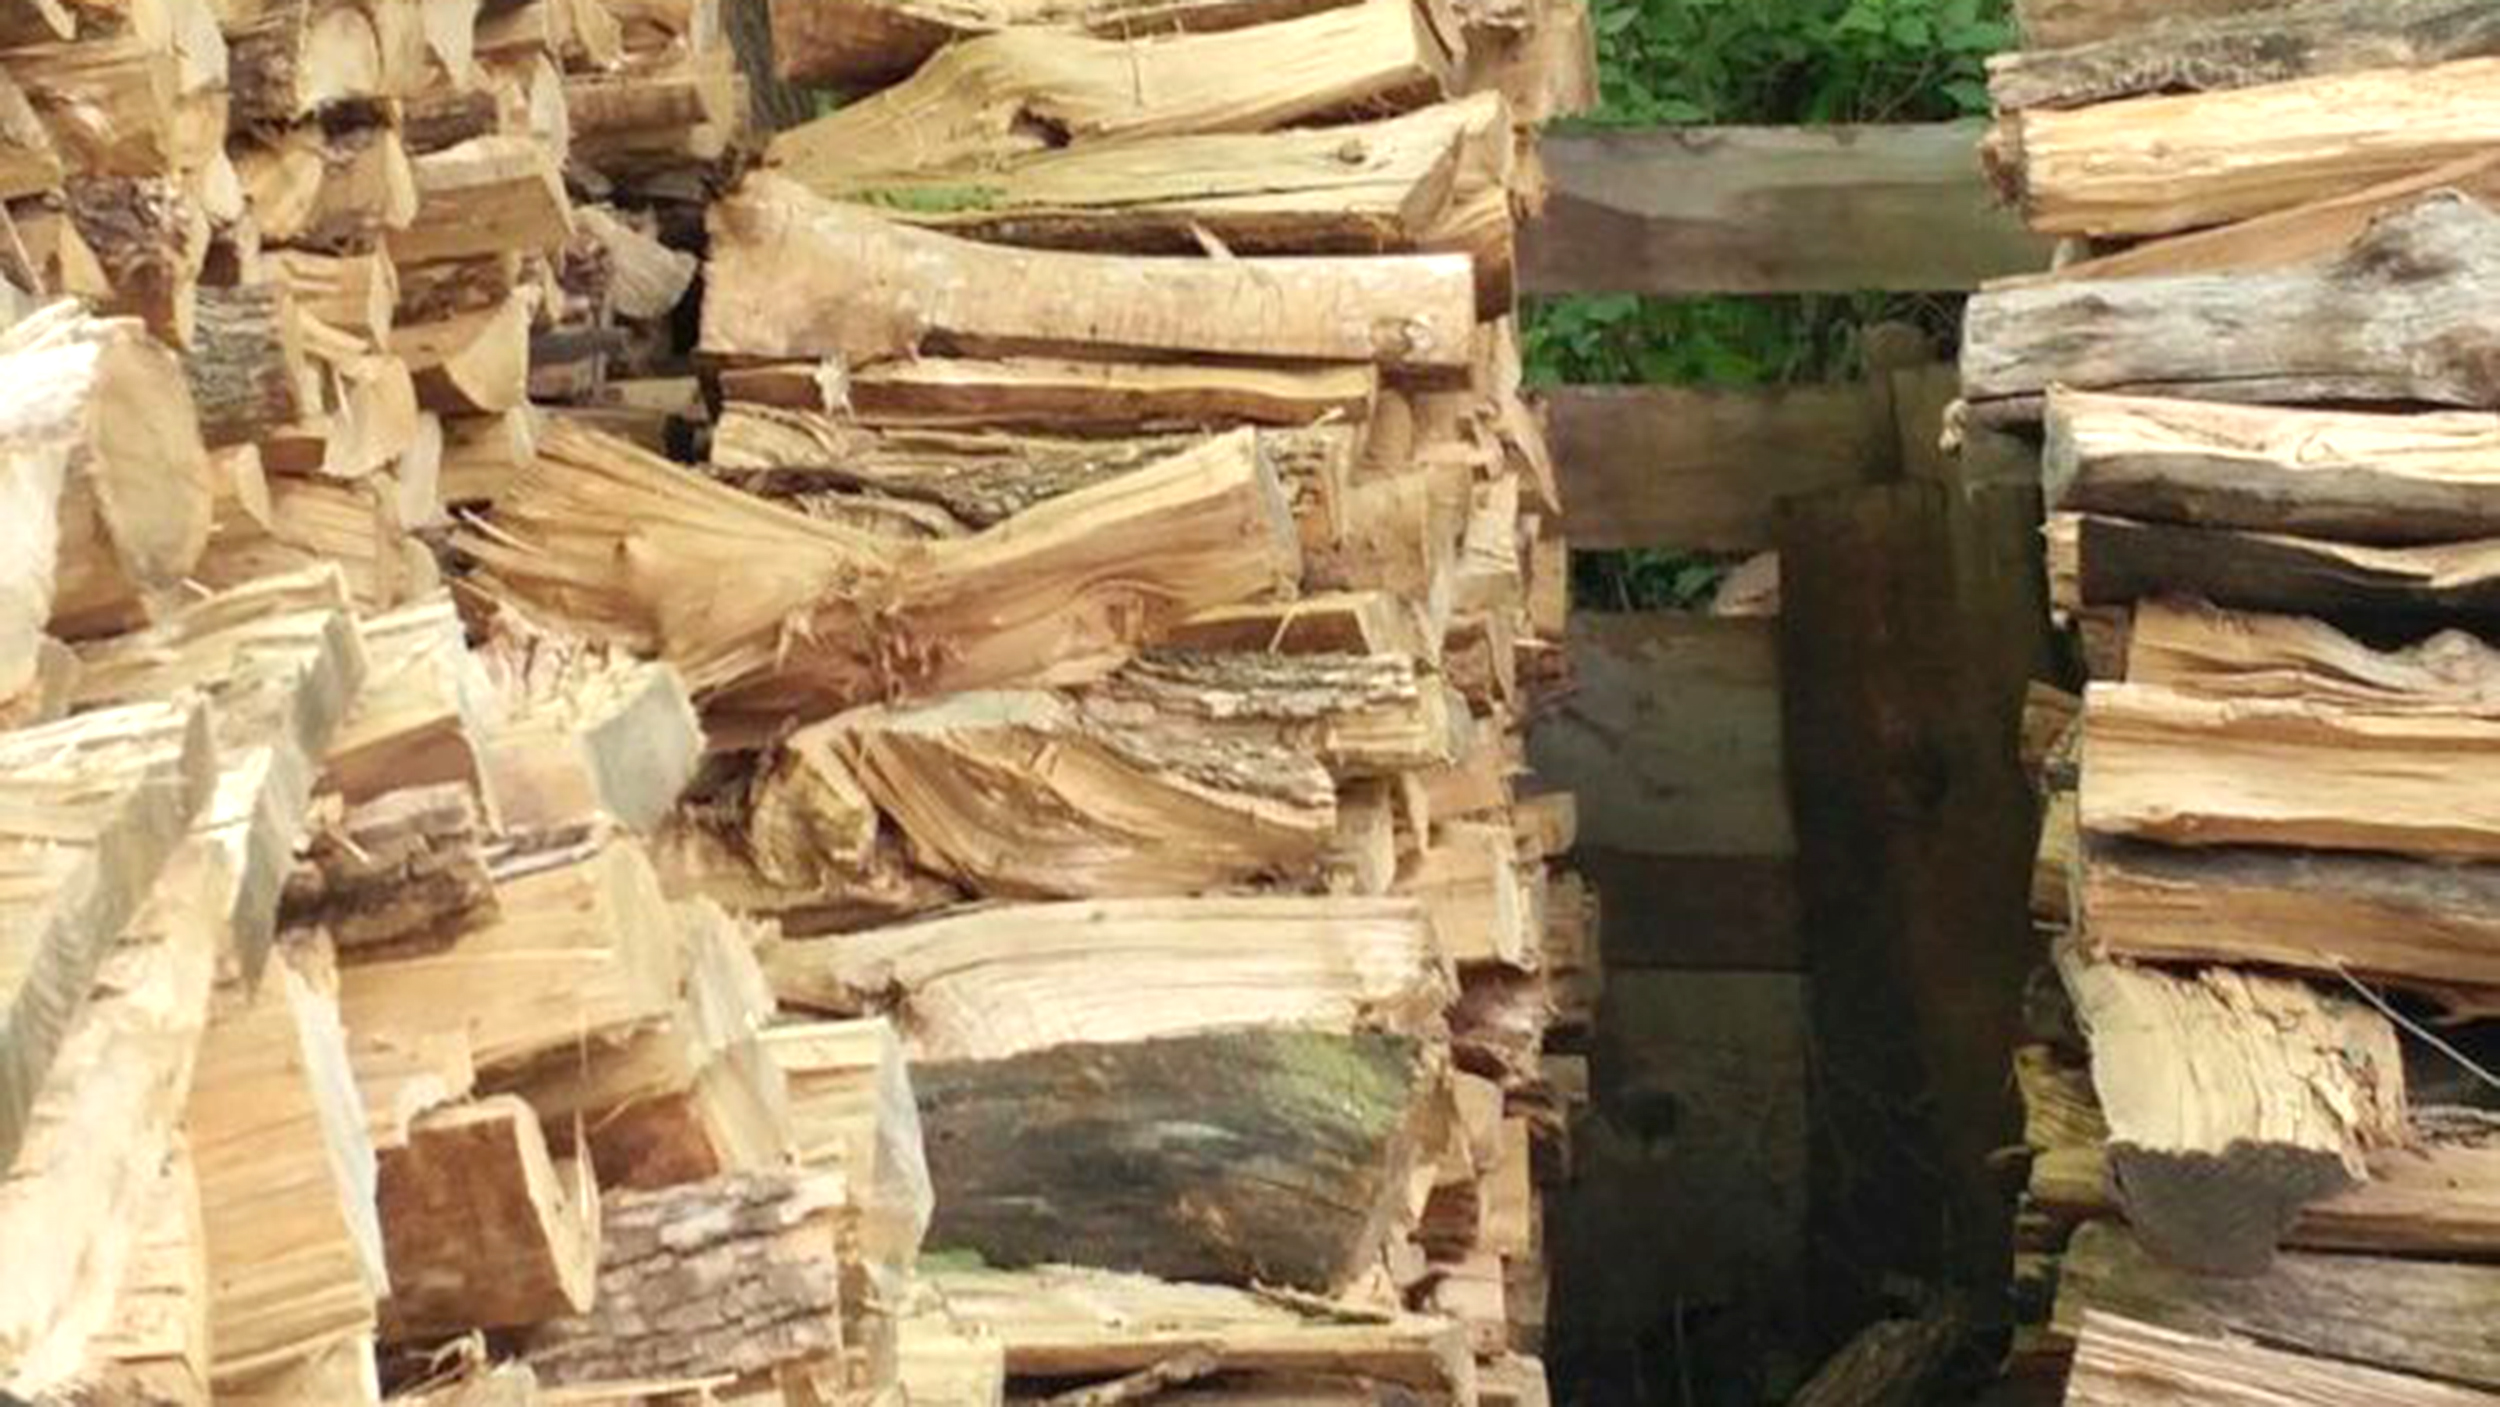 can you spot the cat hidden in this pile of logs